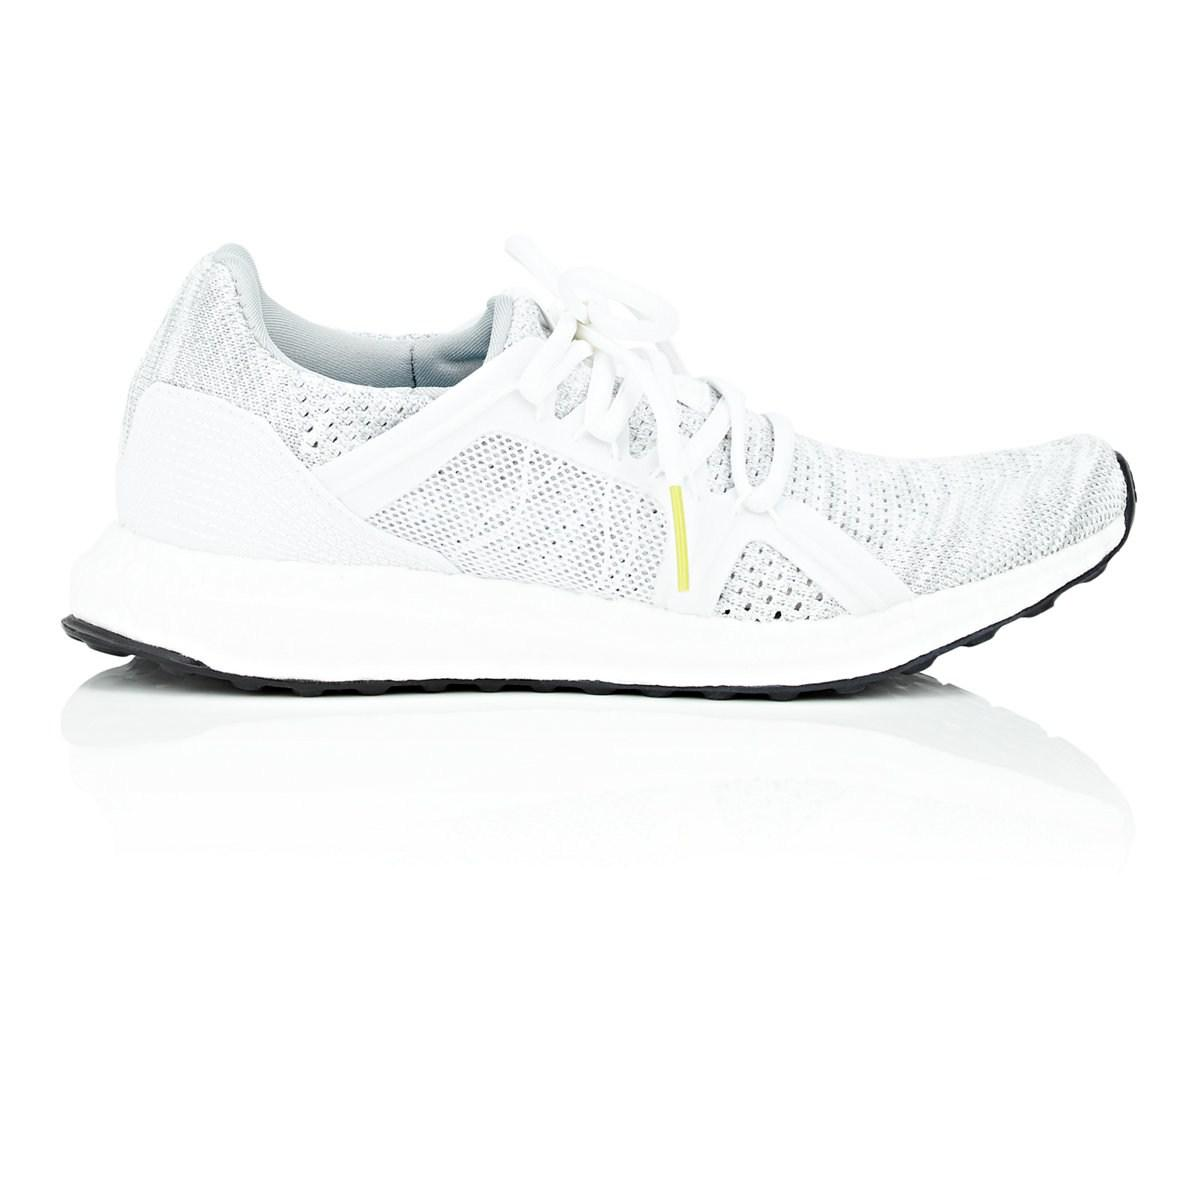 c5cf00d35a18c Lyst - adidas By Stella McCartney Ultraboost Primeknit Sneakers in White